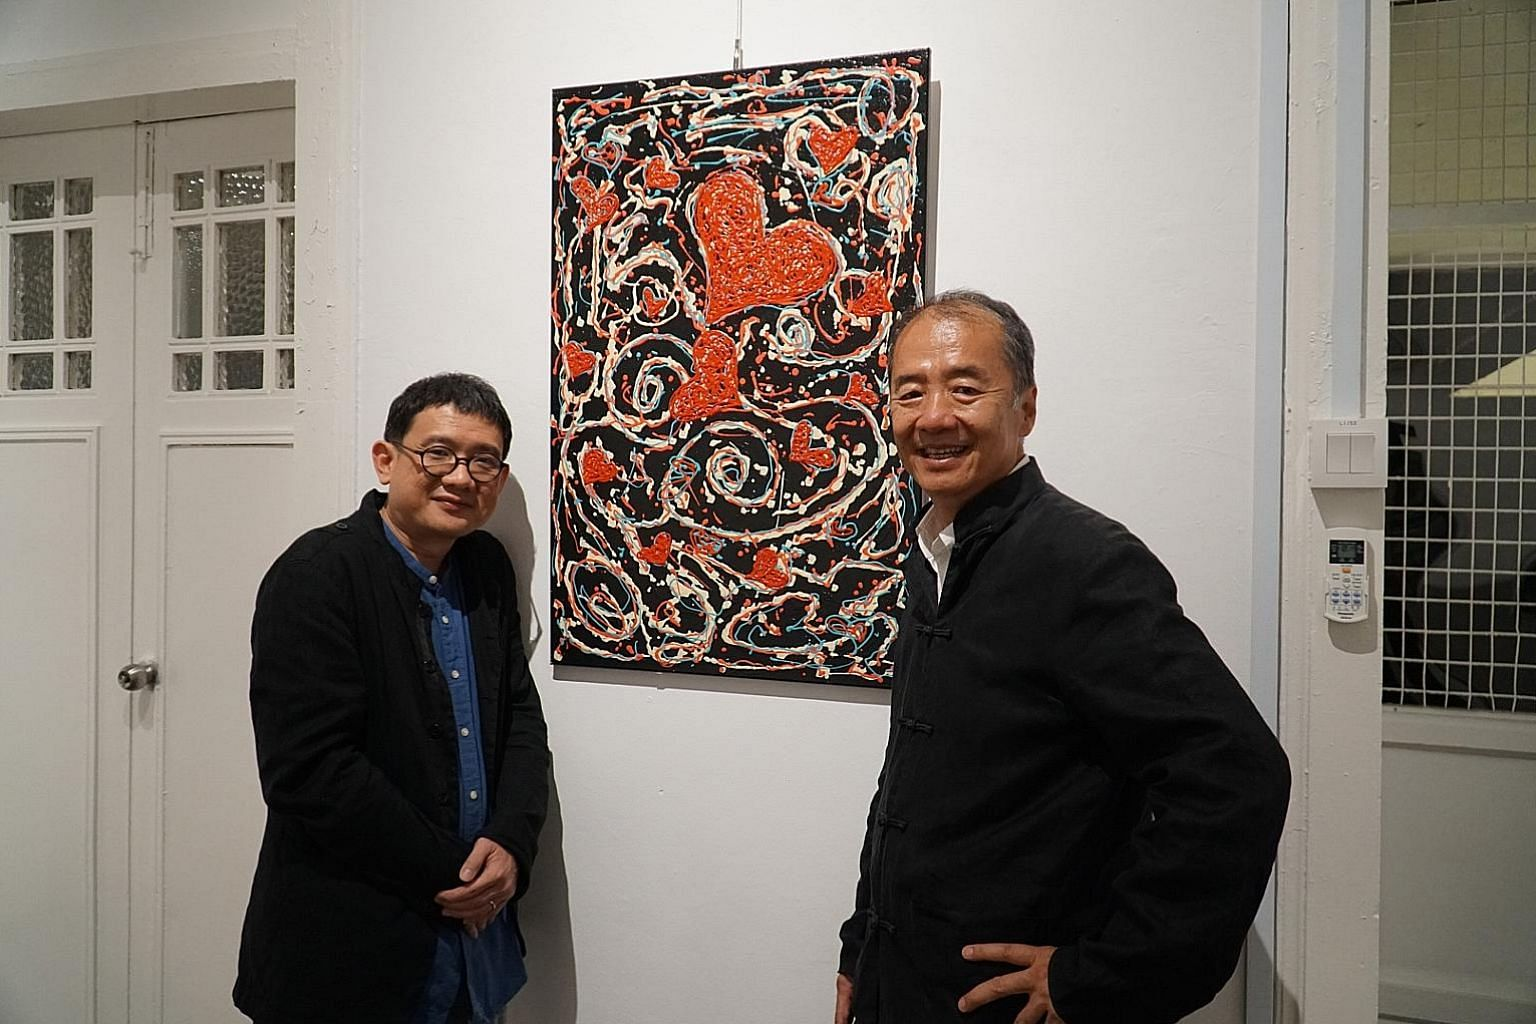 Mr Phan Ming Yen (left), director of non-profit organisation Global Cultural Alliance, and artist Sun Yu Li, with one of the inmates' art works on display at arts centre Temenggong House 18/20.